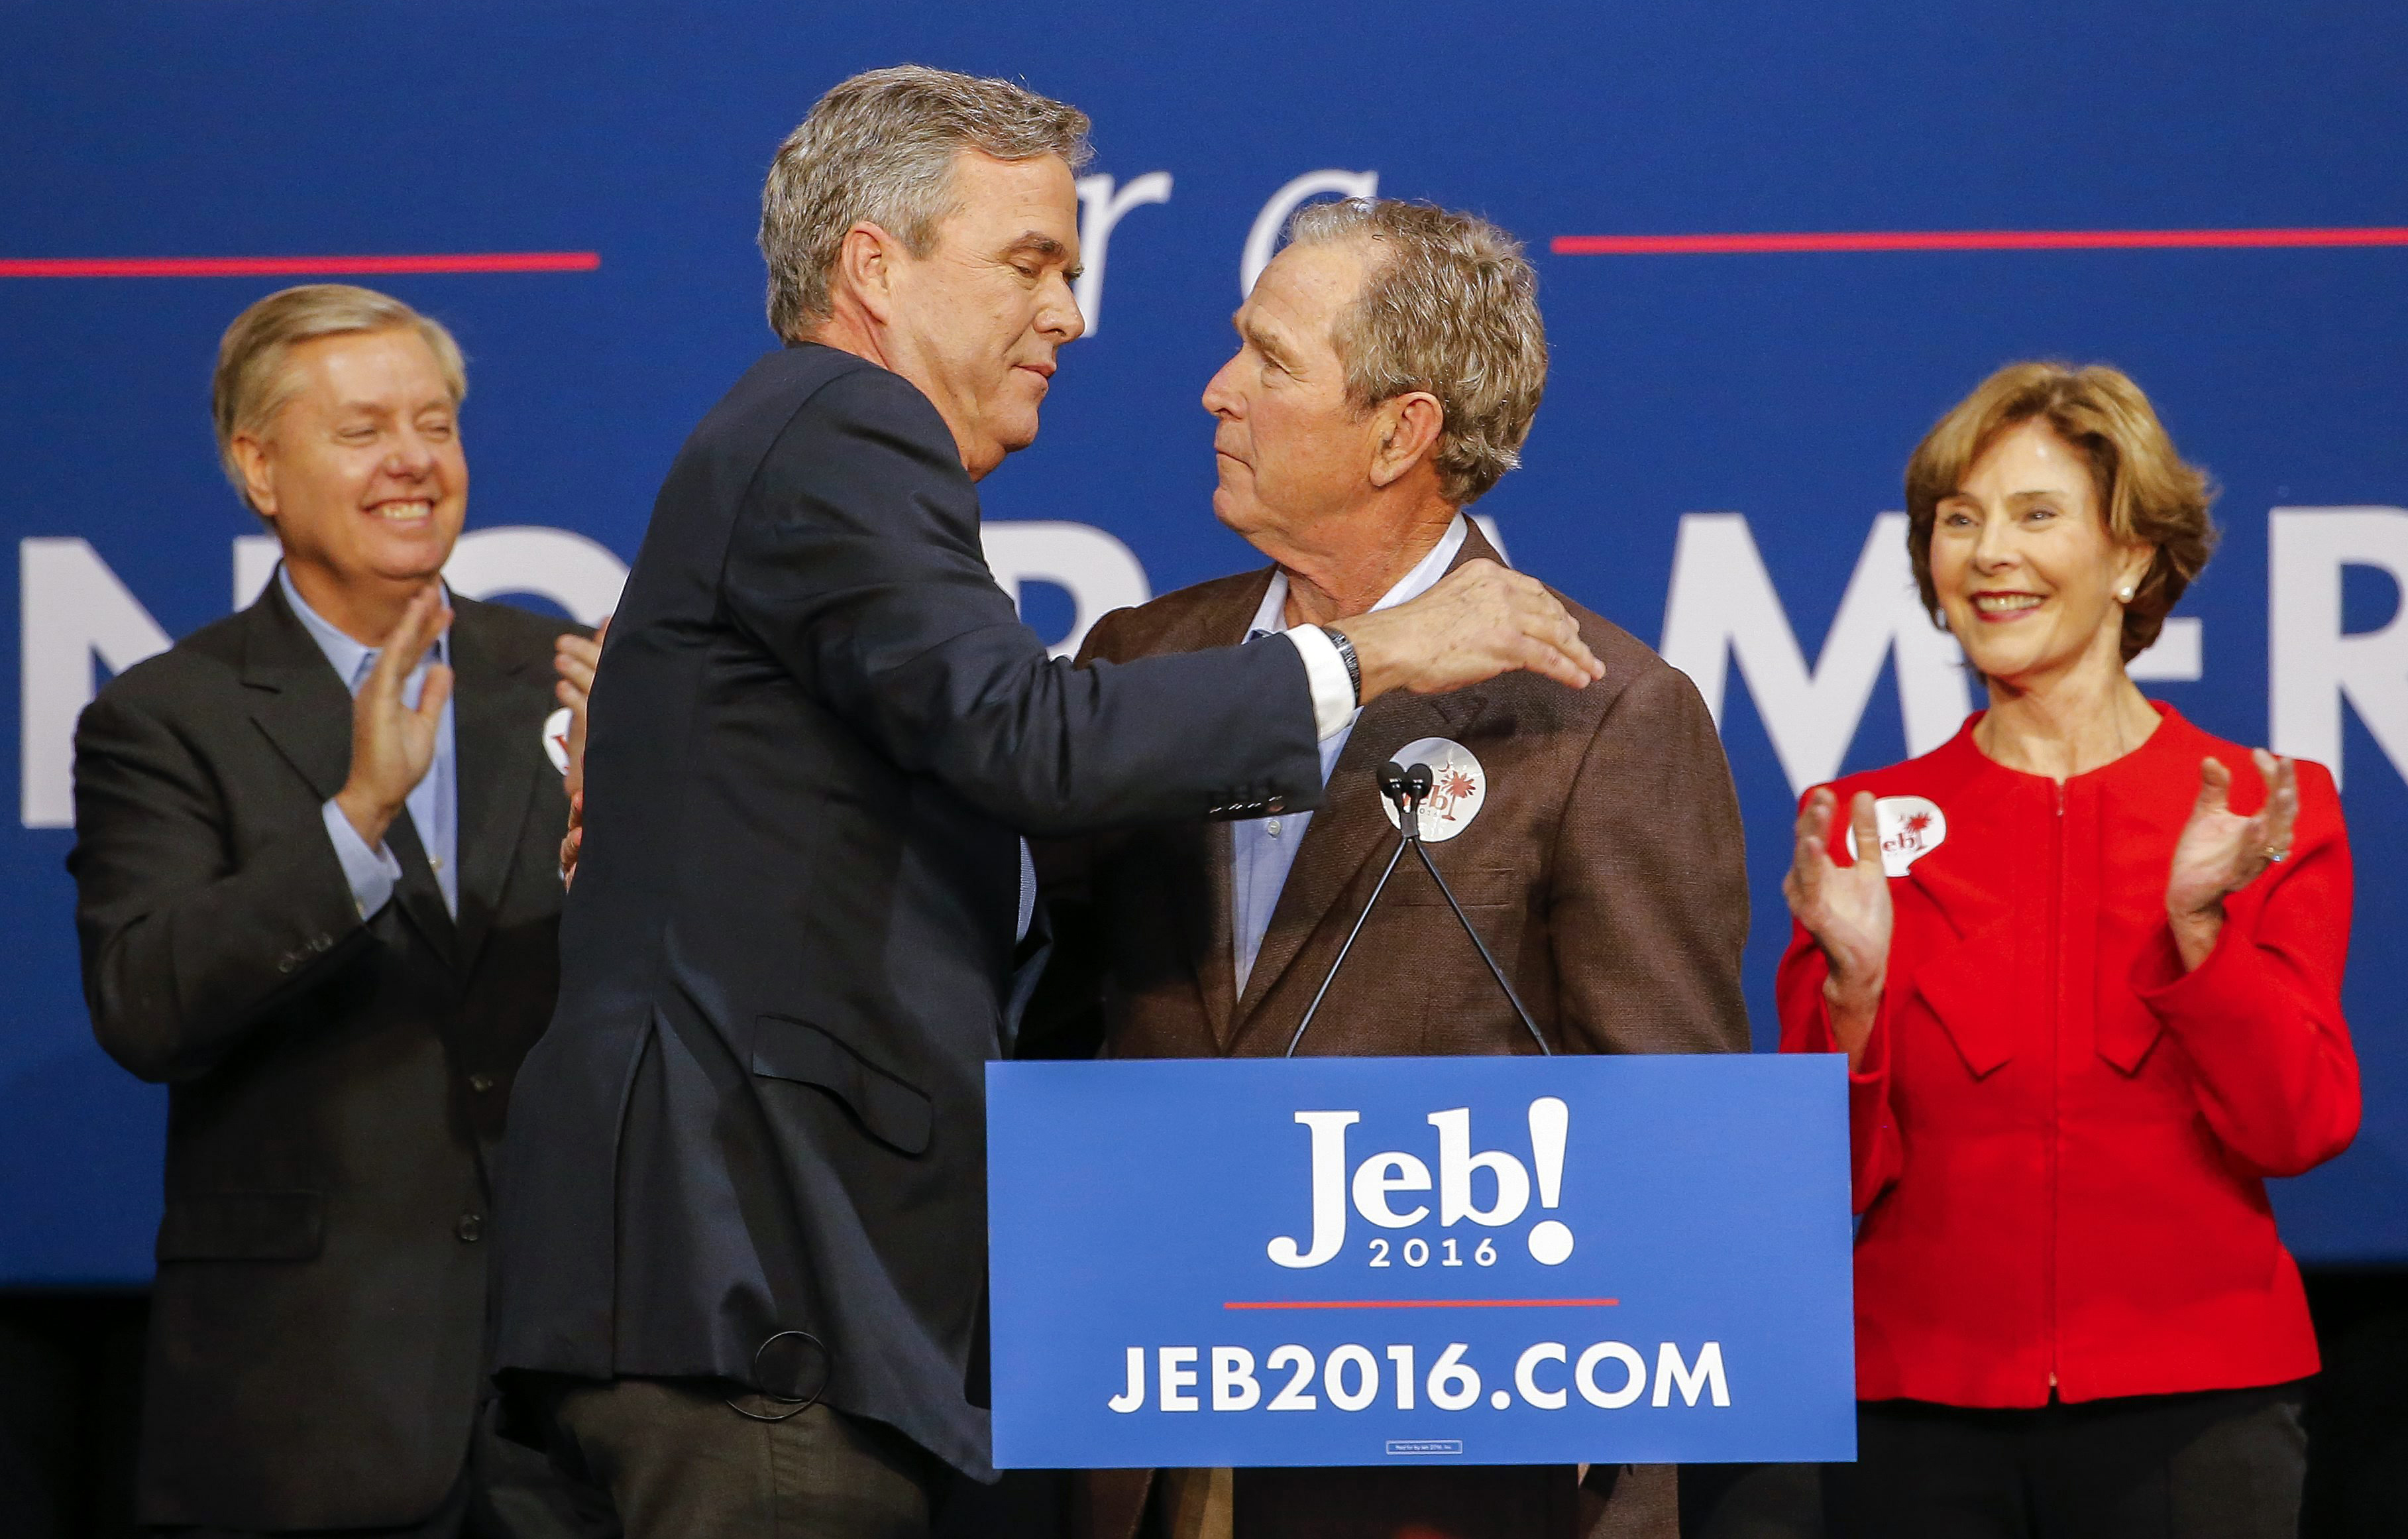 Republican presidential candidate and former Florida Gov. Jeb Bush, center left, participates in a campaign event with his brother, former U.S. President George W. Bush in North Charleston, S.C. on Feb. 15, 2016. Former First Lady Laura Bush, right, and South Carolina Senator Lindsey Graham, left, appear on stage.